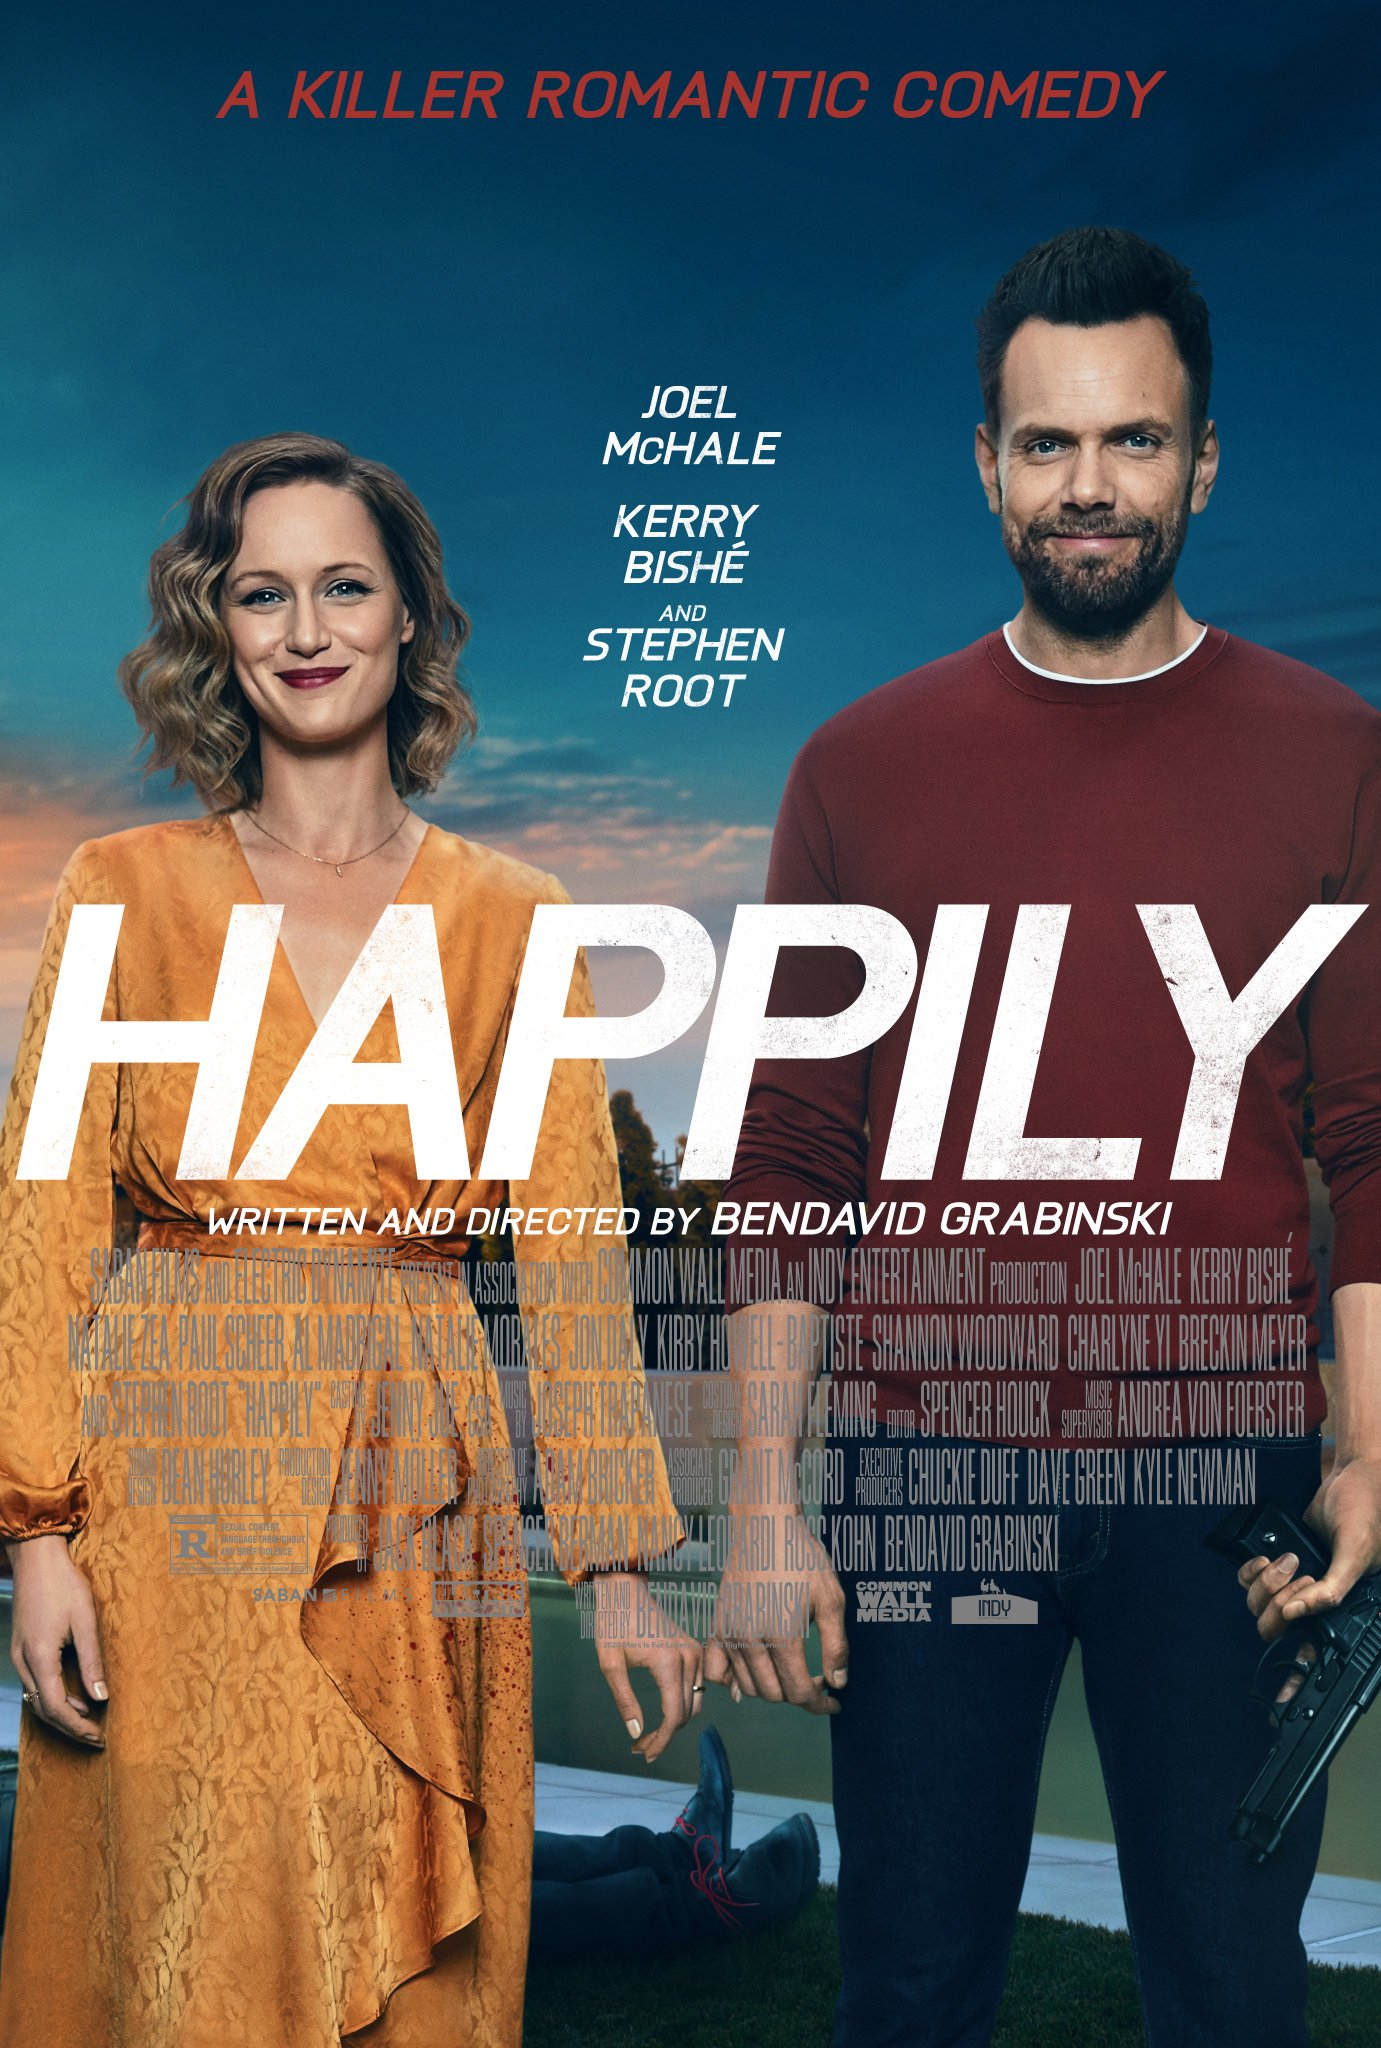 Download Filme Happily Torrent 2021 Qualidade Hd